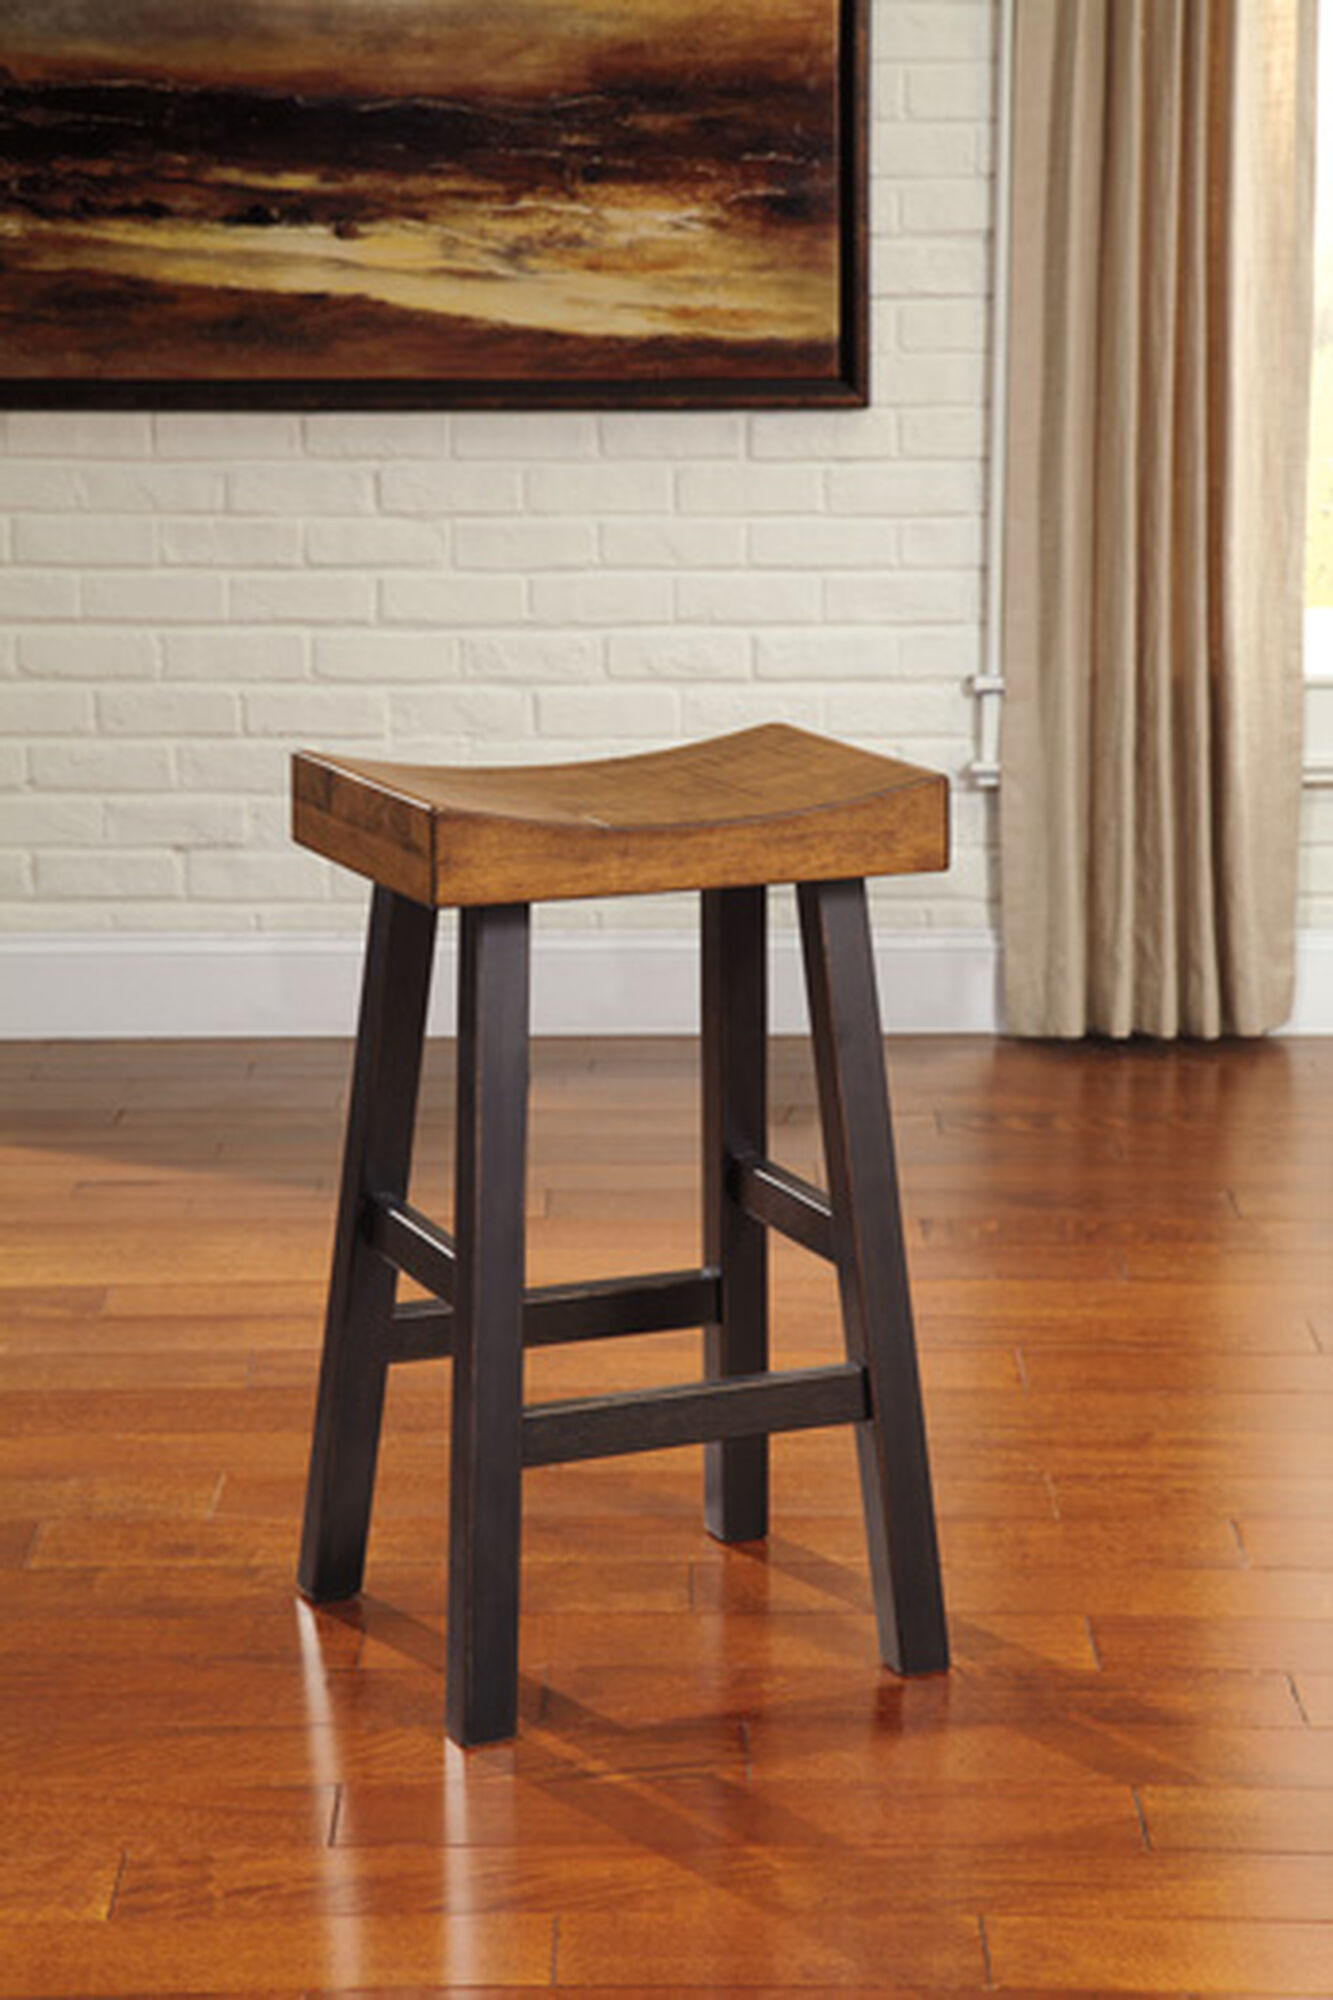 Casual 31 Quot Saddle Seat Bar Stool In Dark Brown Mathis